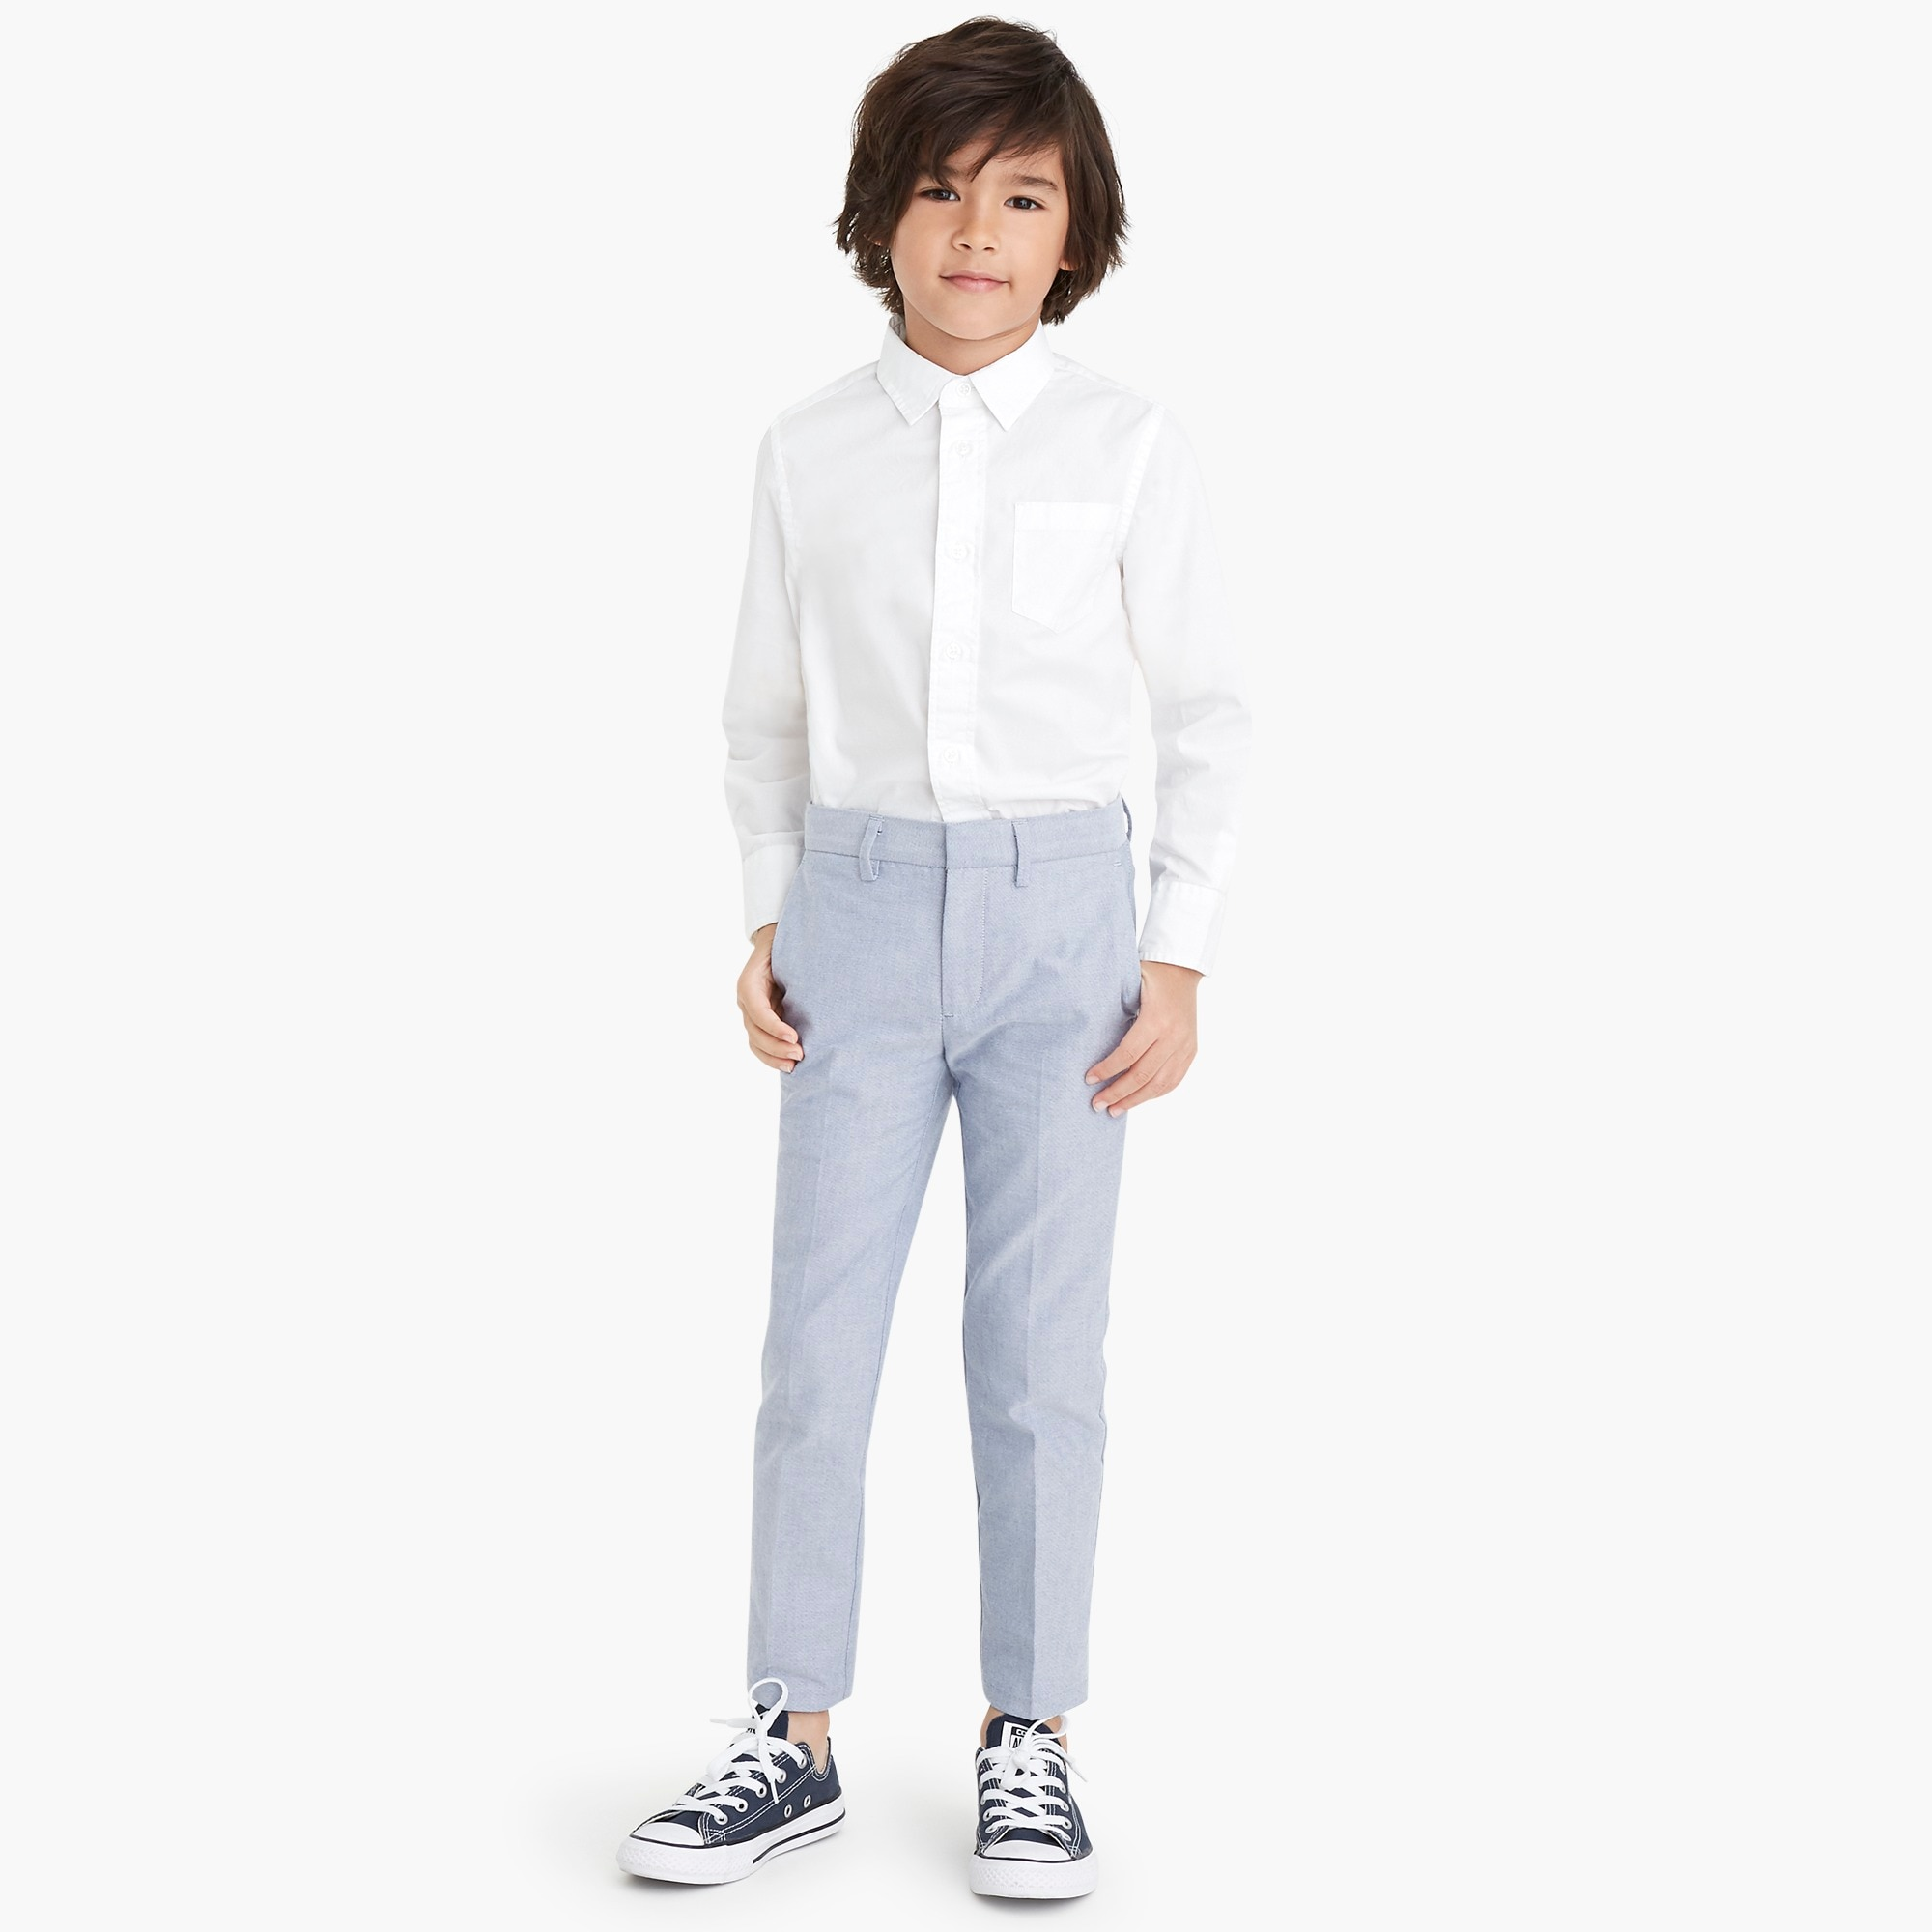 factory boys Boys'  Thompson suit pant in oxford